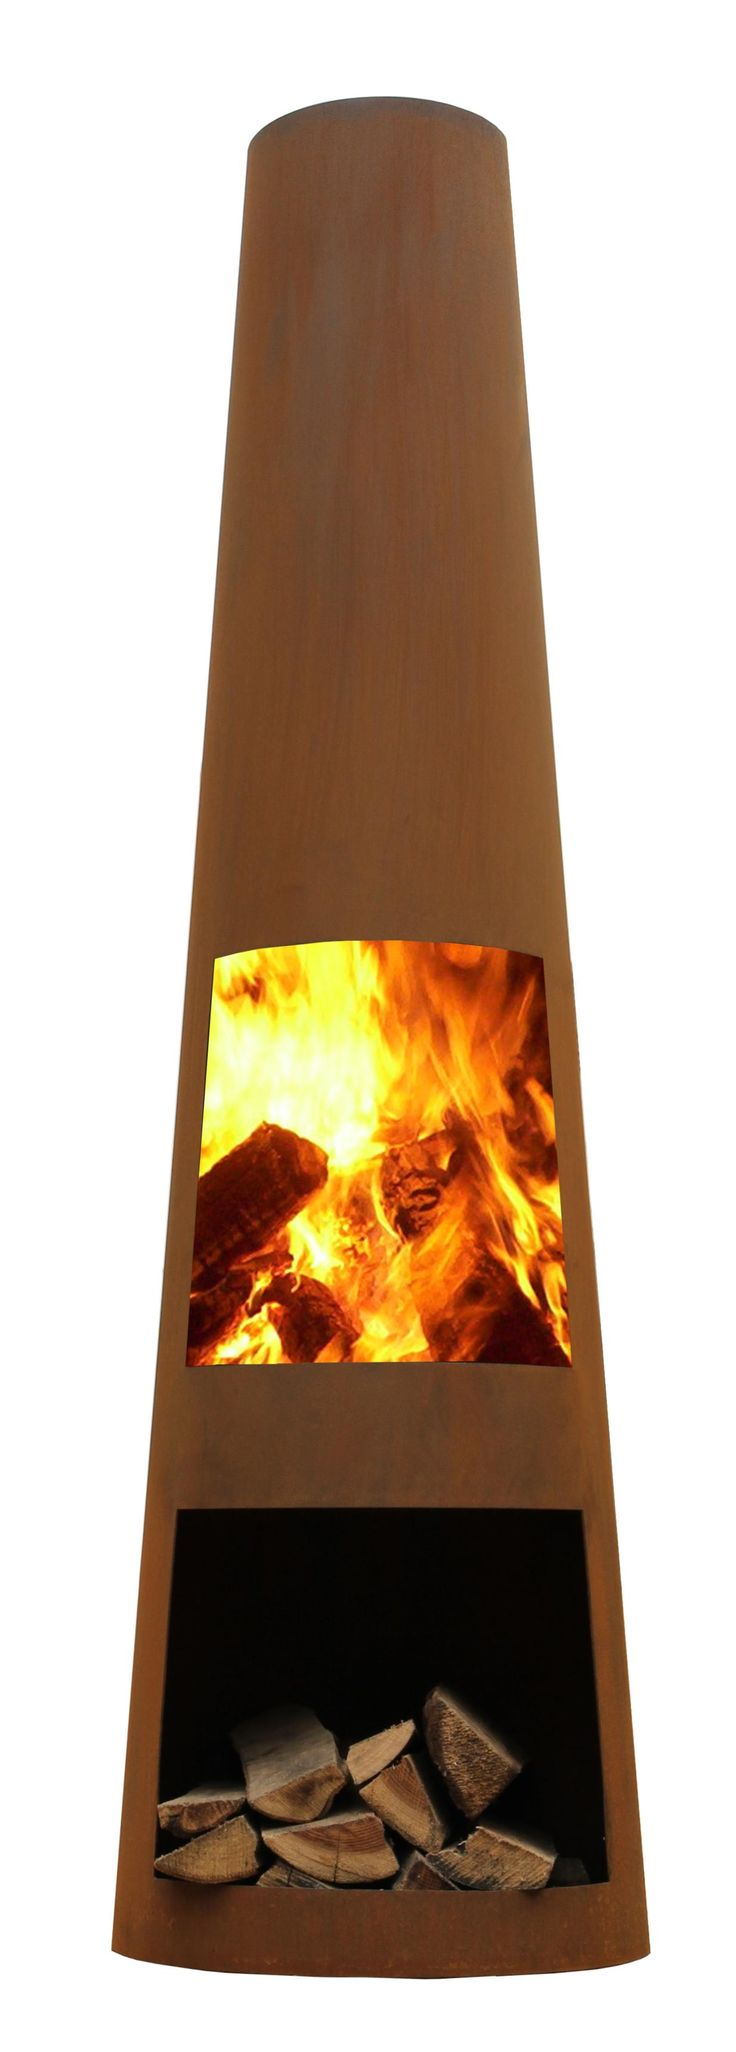 147 best vuurkorf images on pinterest fire pits outdoor